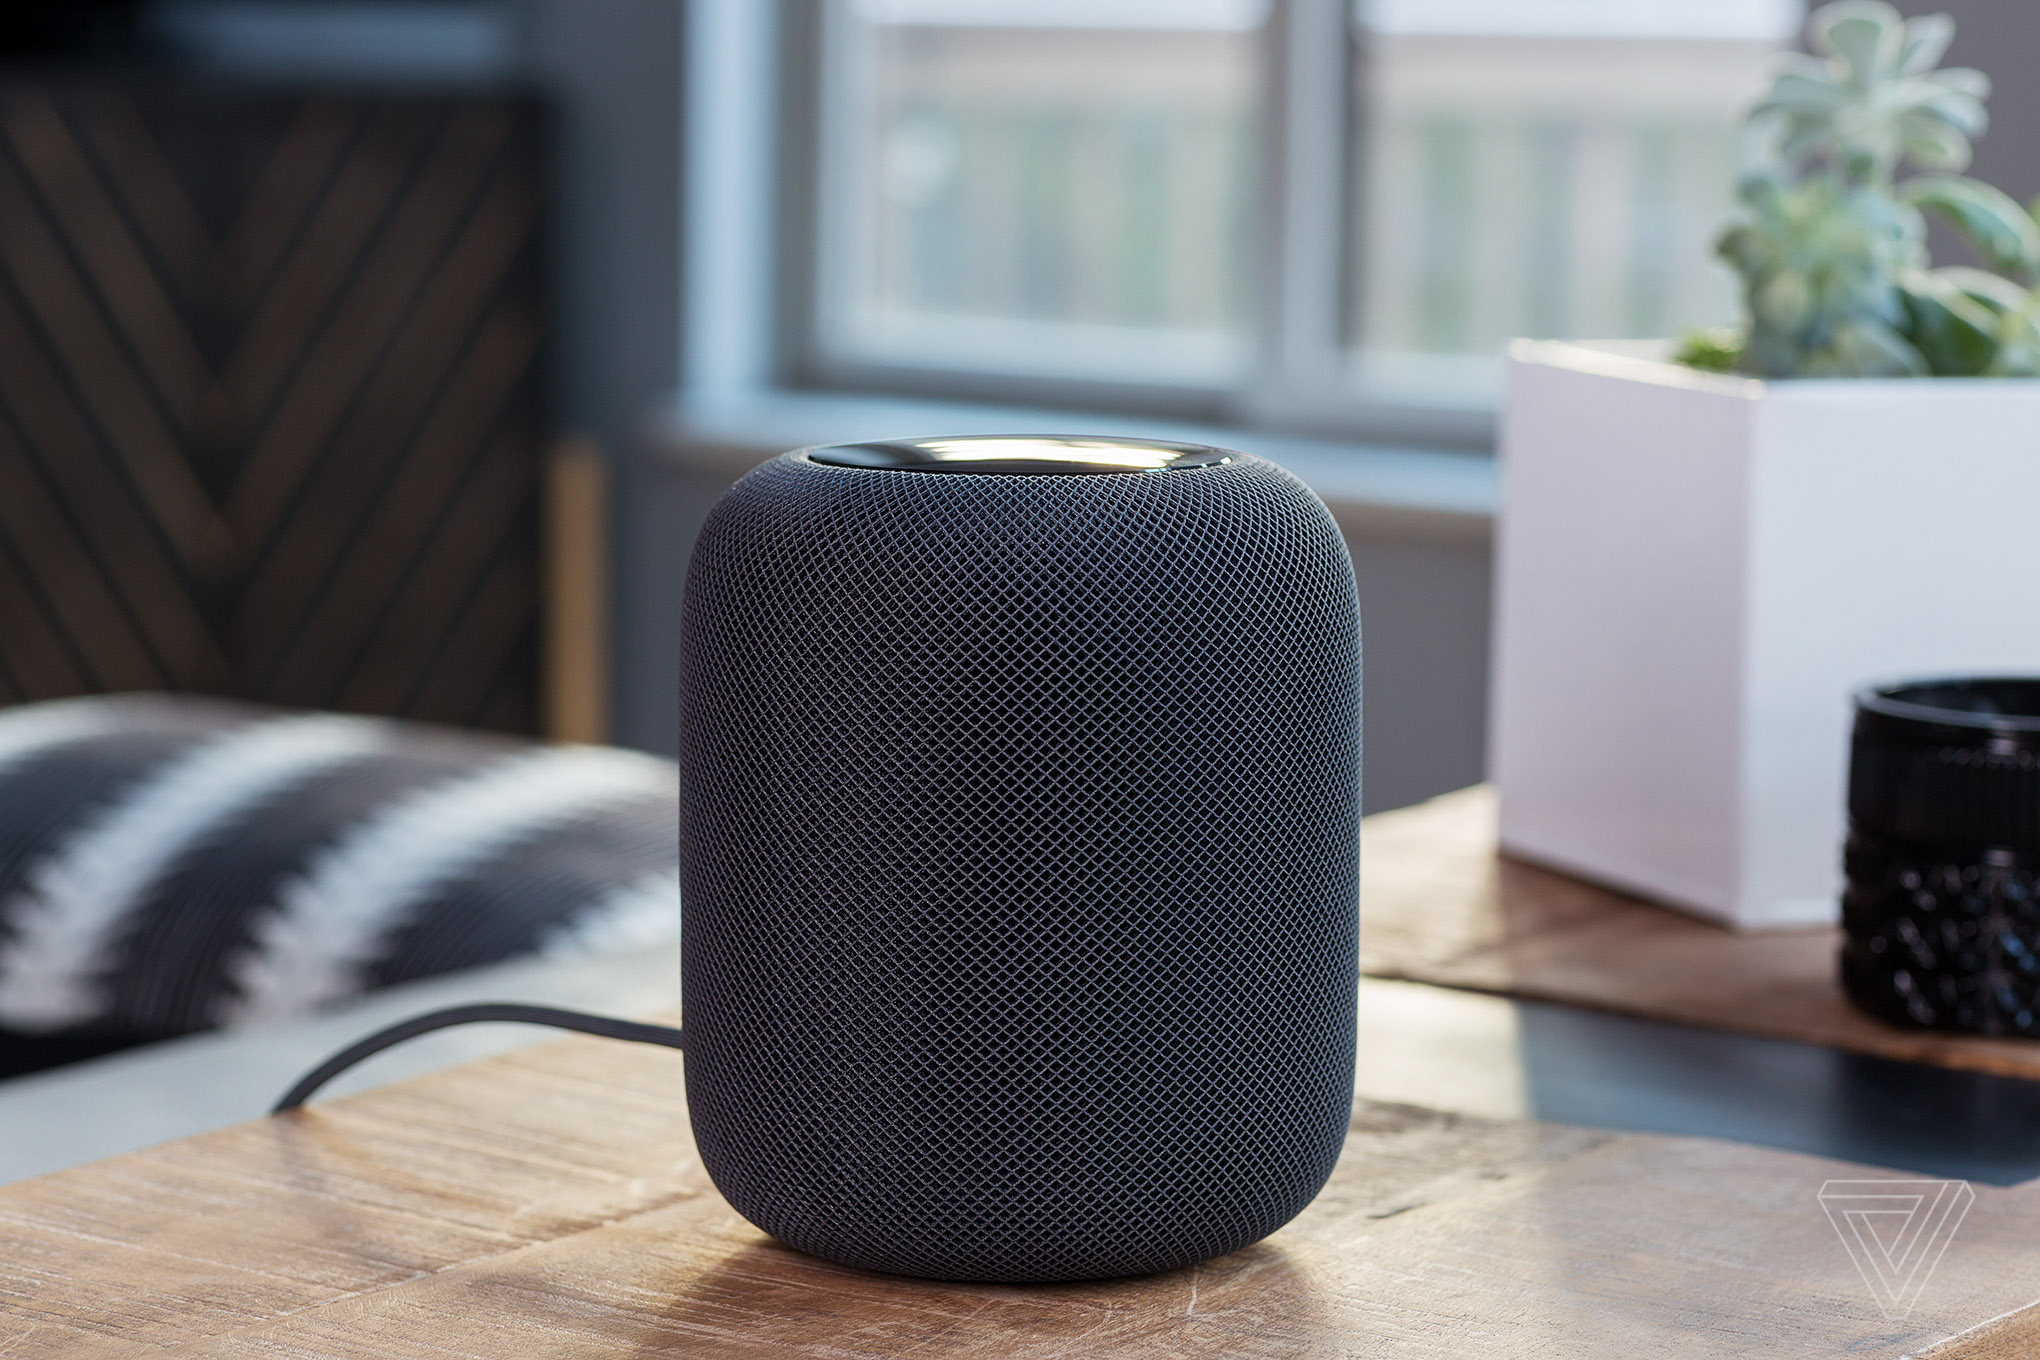 The most useless accessory cover for HomePod